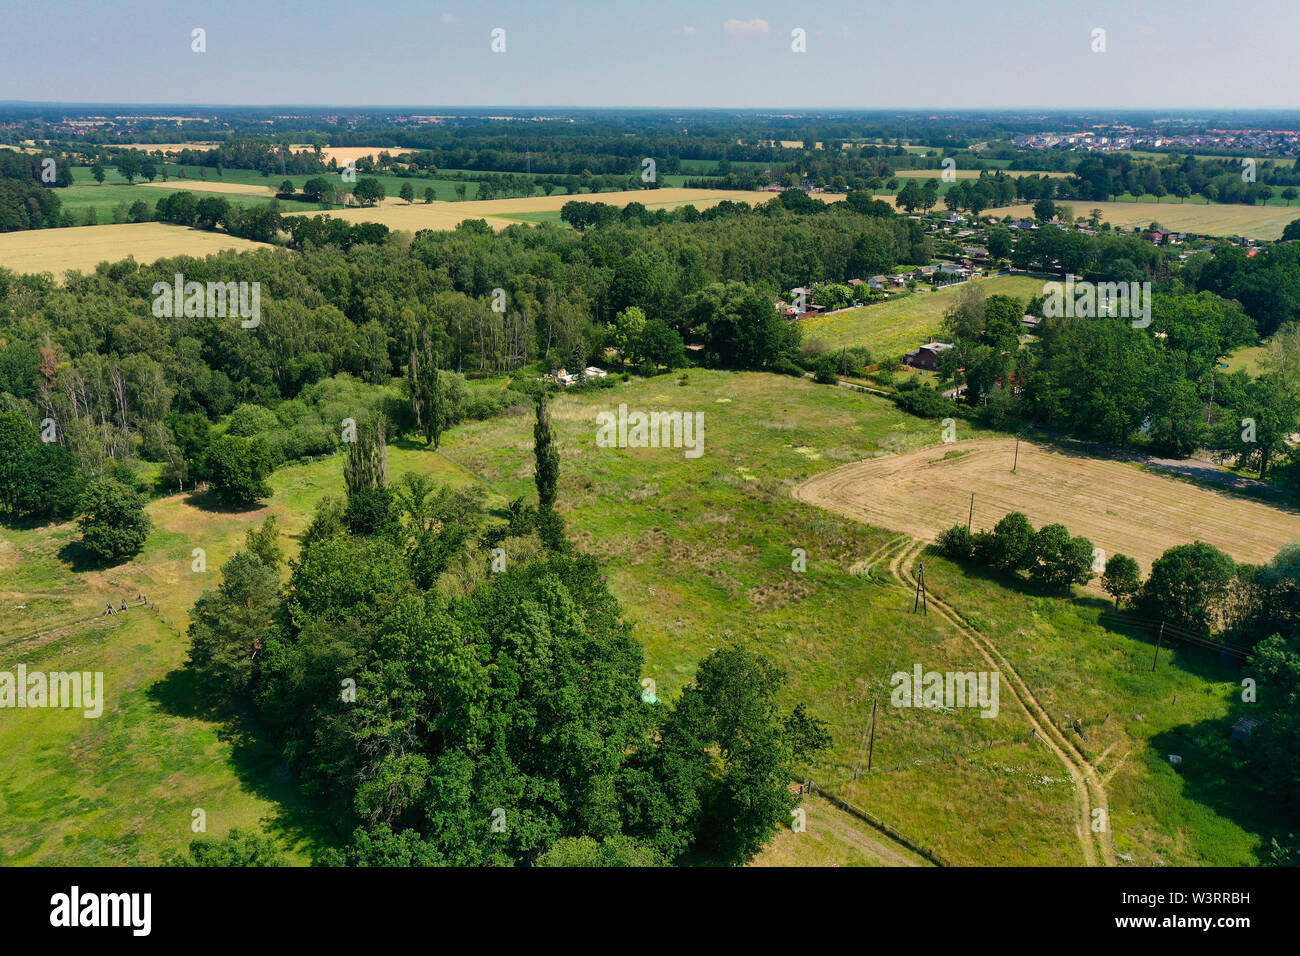 Aerial view of a meadow area with a few houses and a loose stock of bushes and trees. Stock Photo